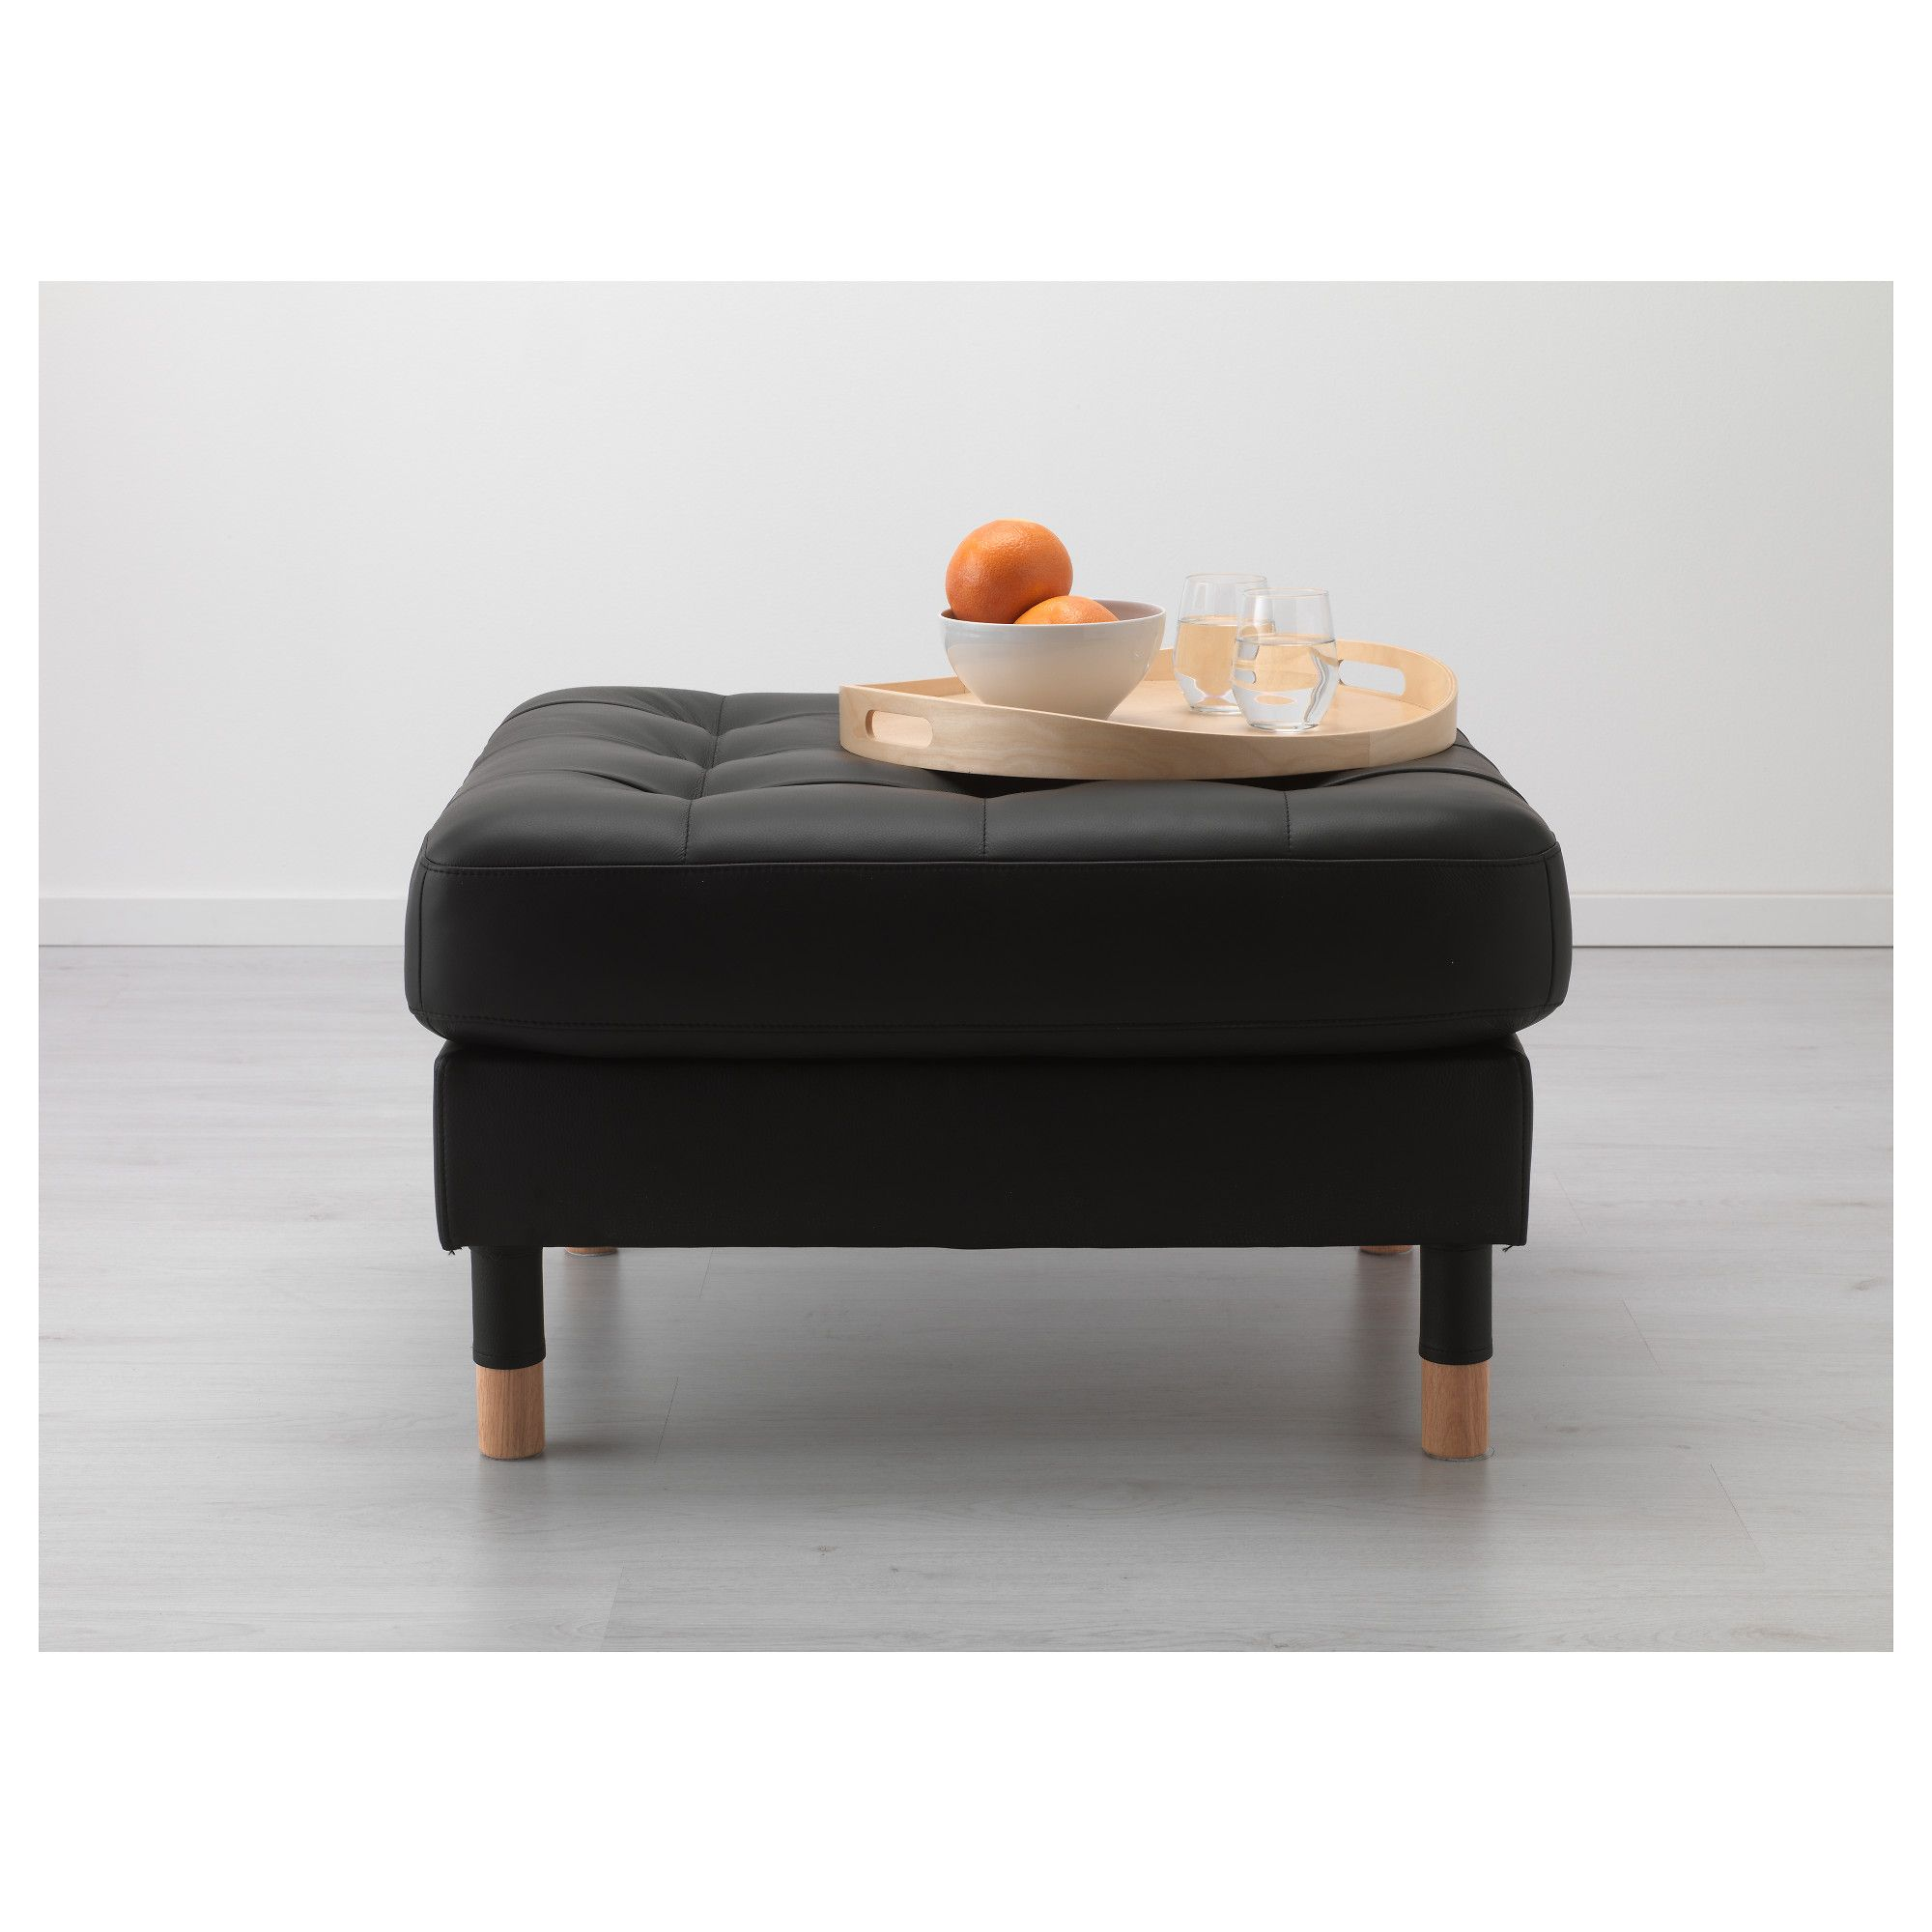 Outstanding Ikea Landskrona Footstool Grann Bomstad Black Wood Creativecarmelina Interior Chair Design Creativecarmelinacom